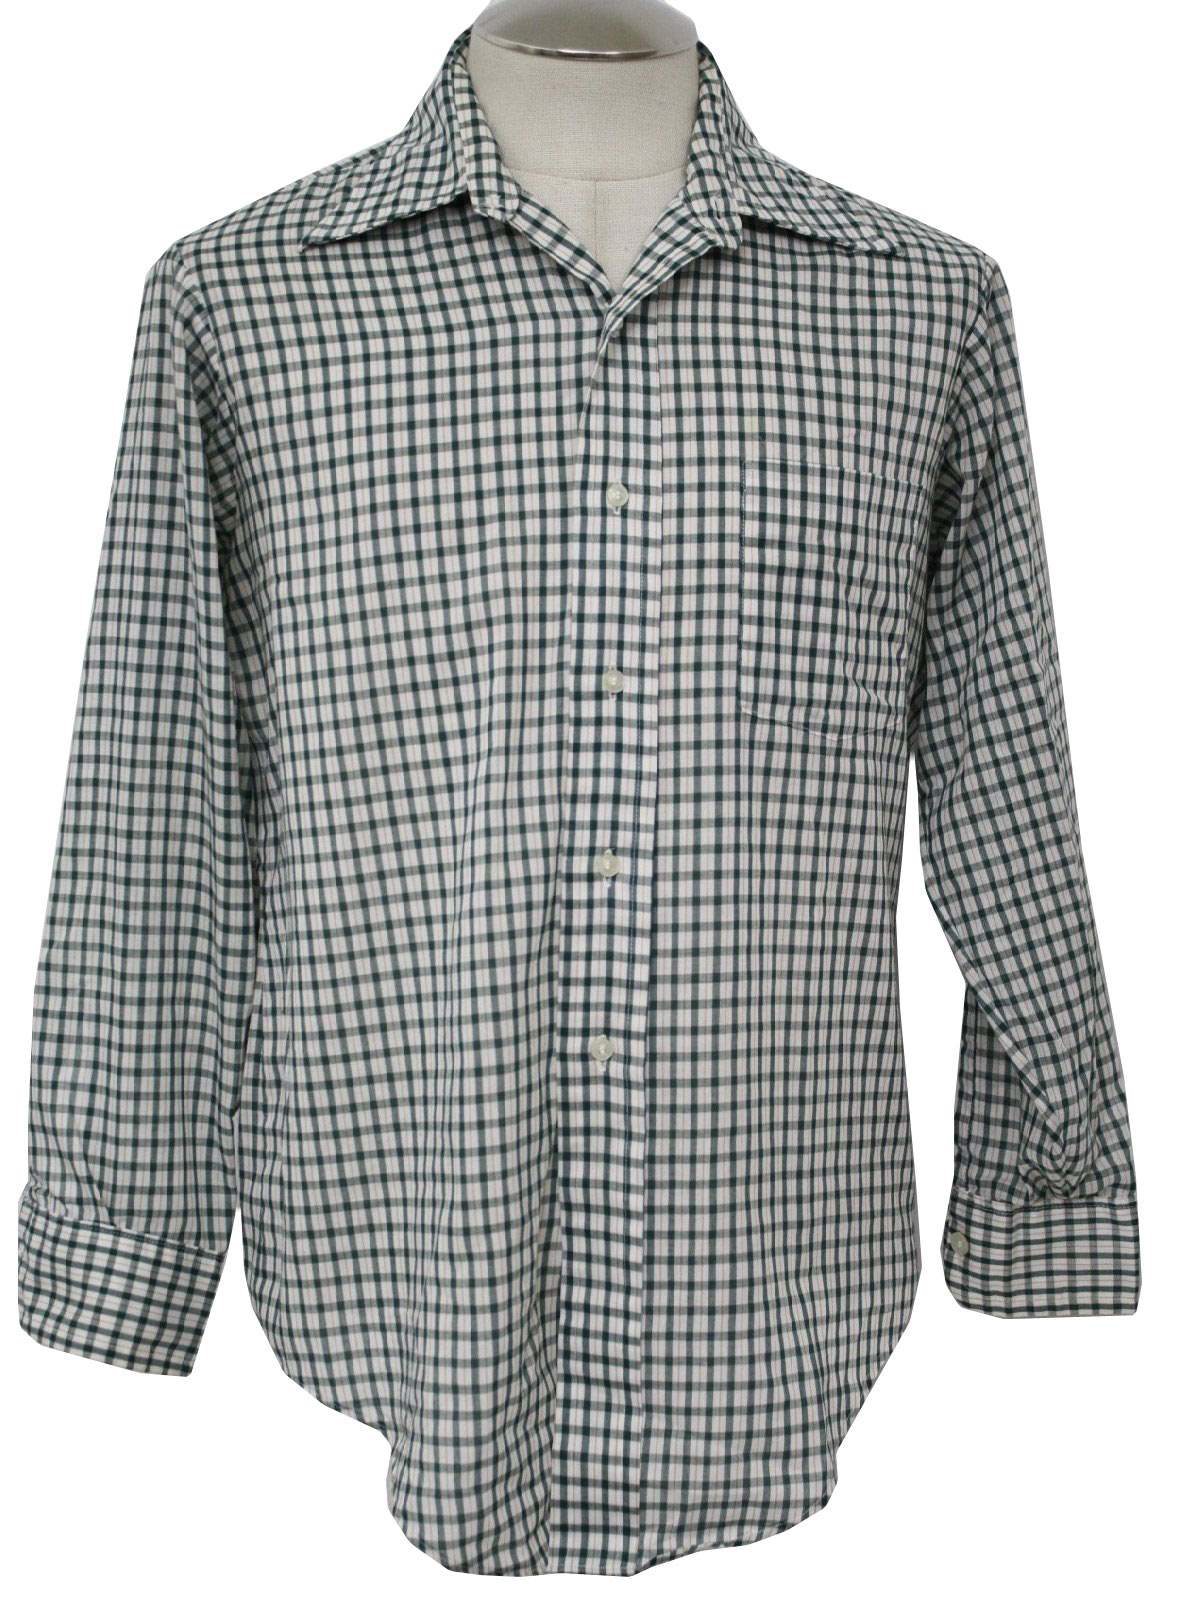 Retro 70's Shirt: 70s -Van Heusen- Mens white, green and gold ...